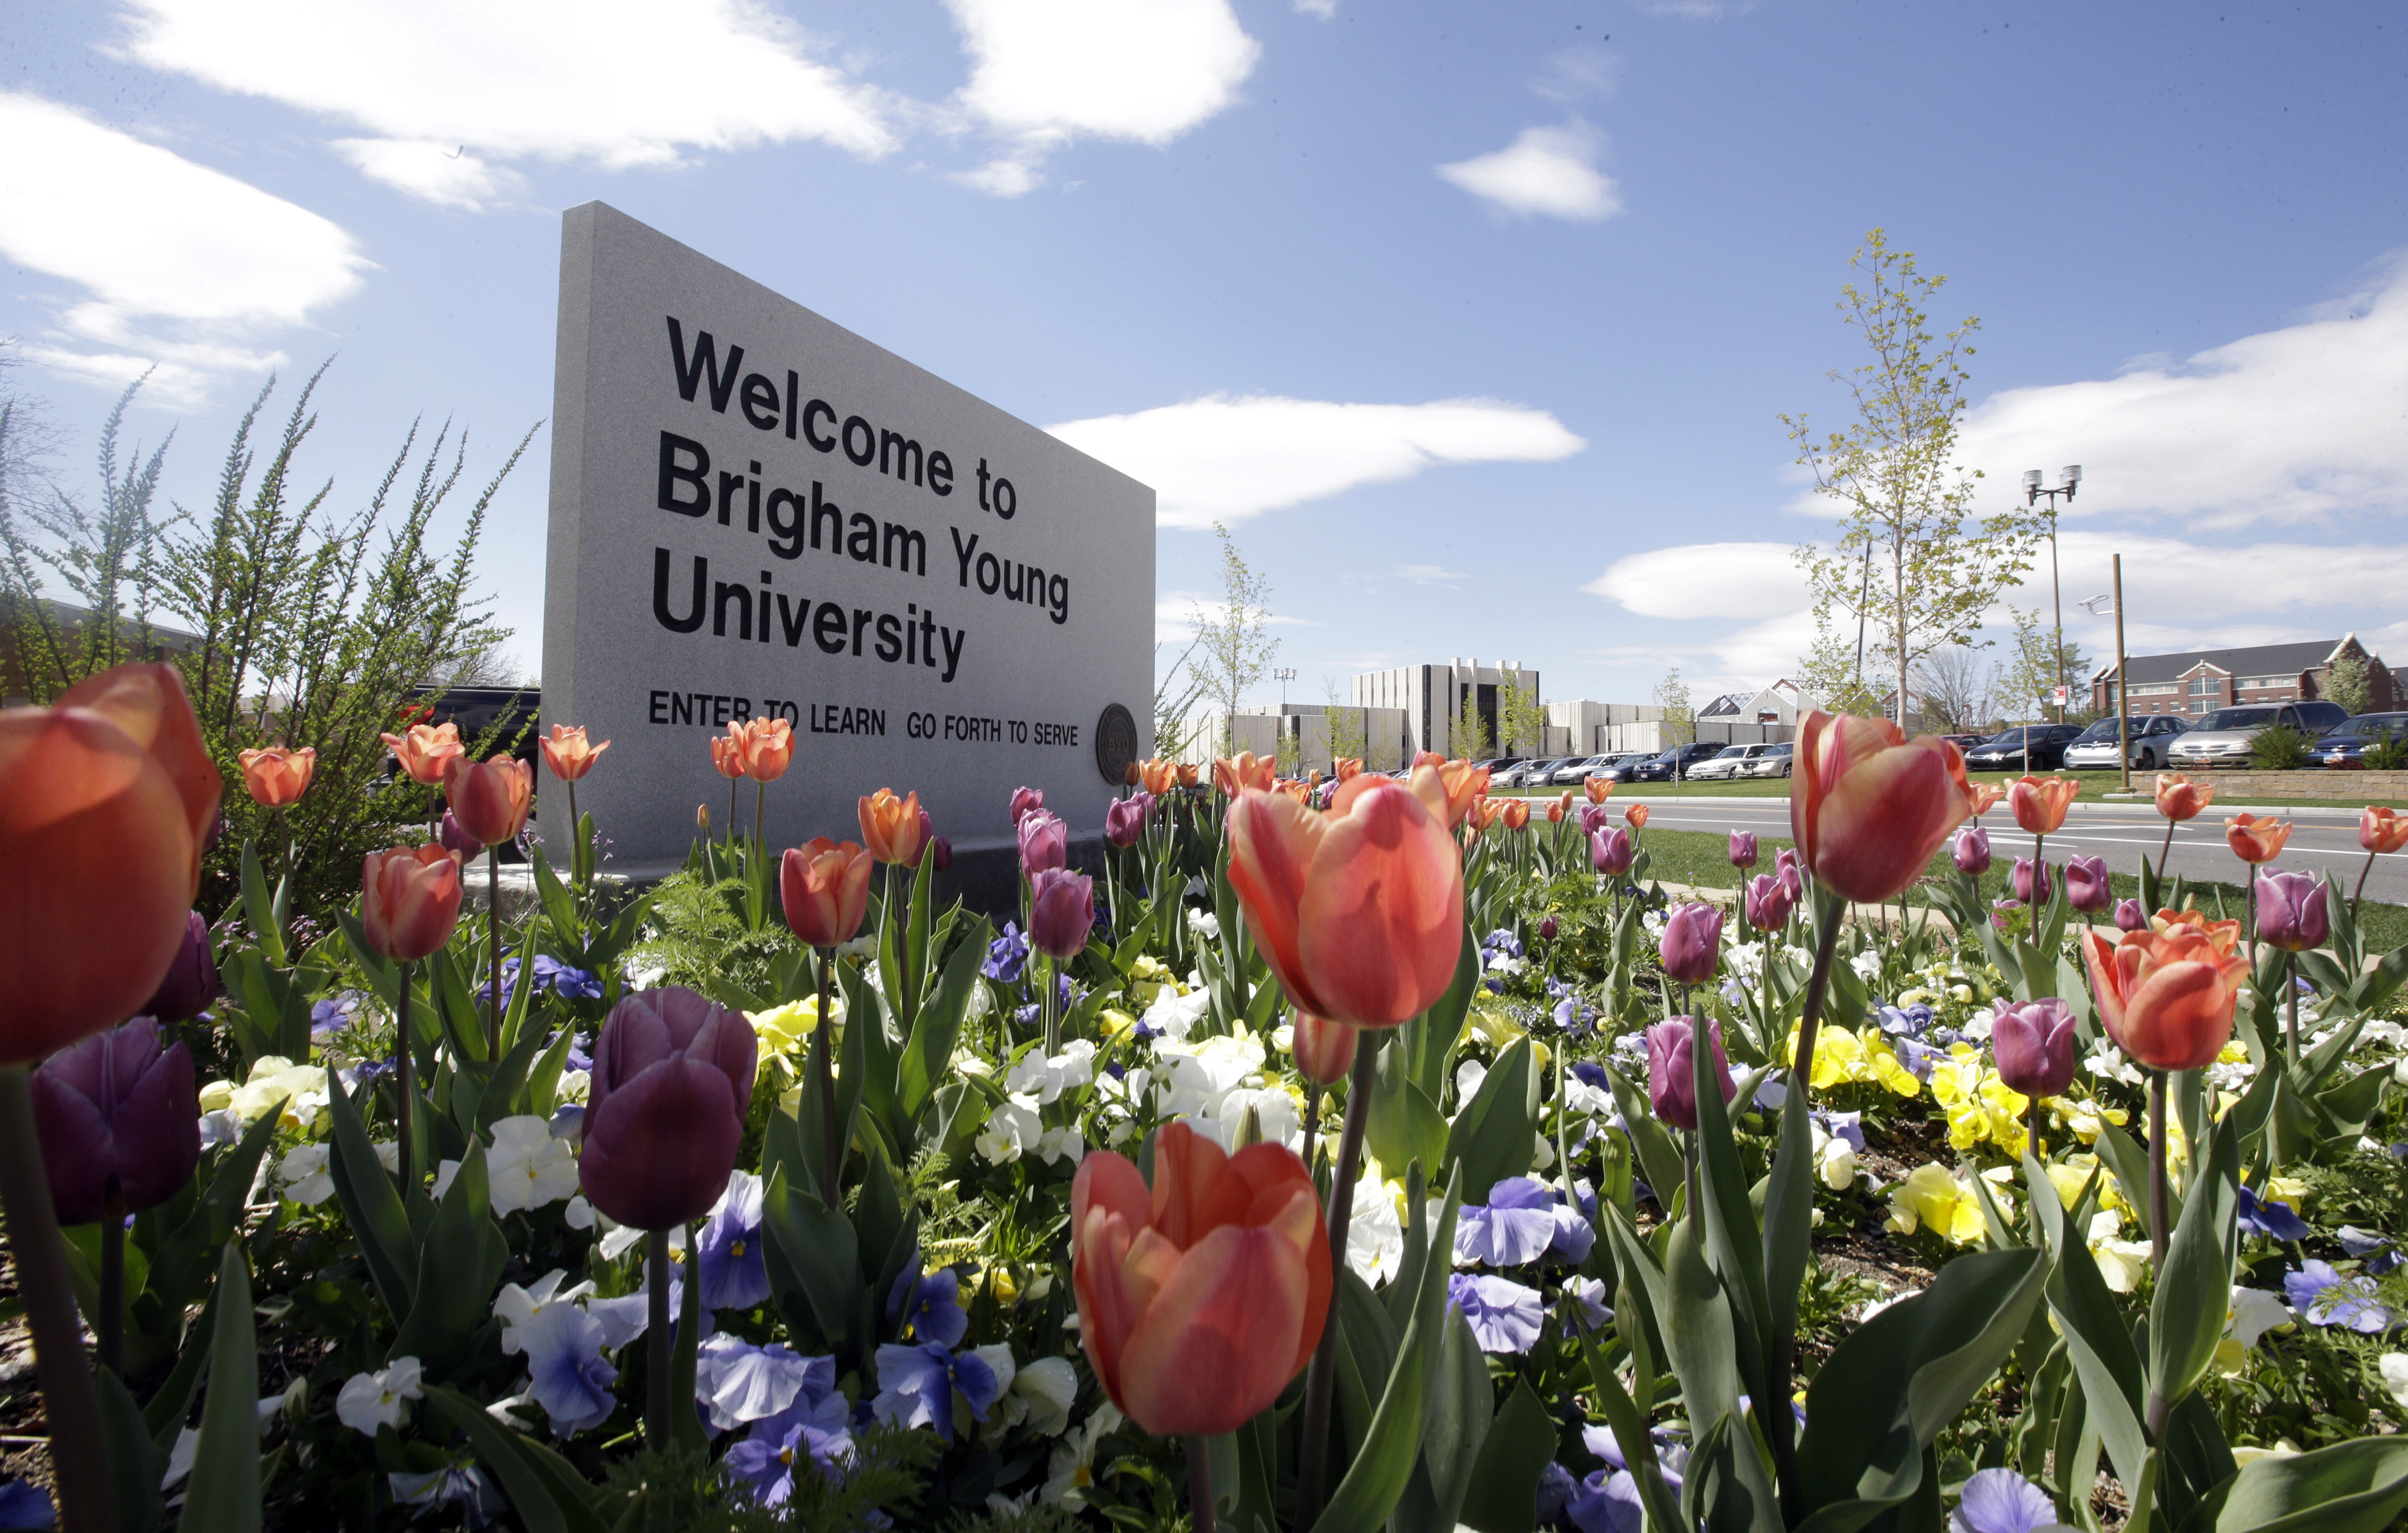 FILE - This April 19, 2016, file photo, shows a welcome sign to Brigham Young University in Provo, Utah. Brigham Young University found out Thursday, Aug. 4, 2016, that federal authorities will investigate the campus process for handling reports of sexual assault. (AP Photo/Rick Bowmer, File)